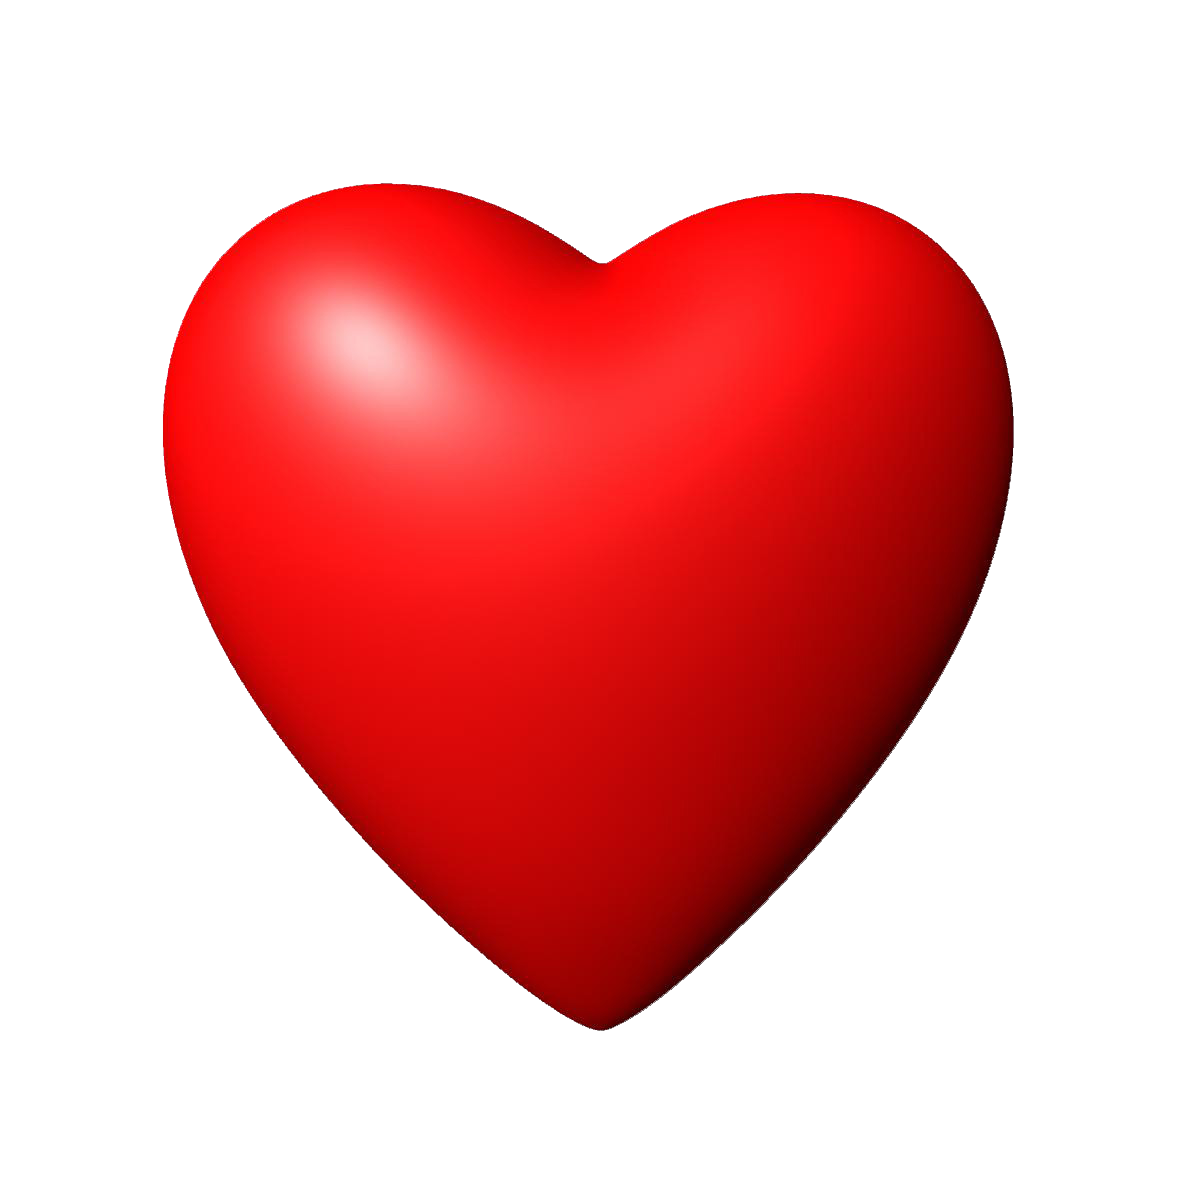 3D Red Heart PNG Image.